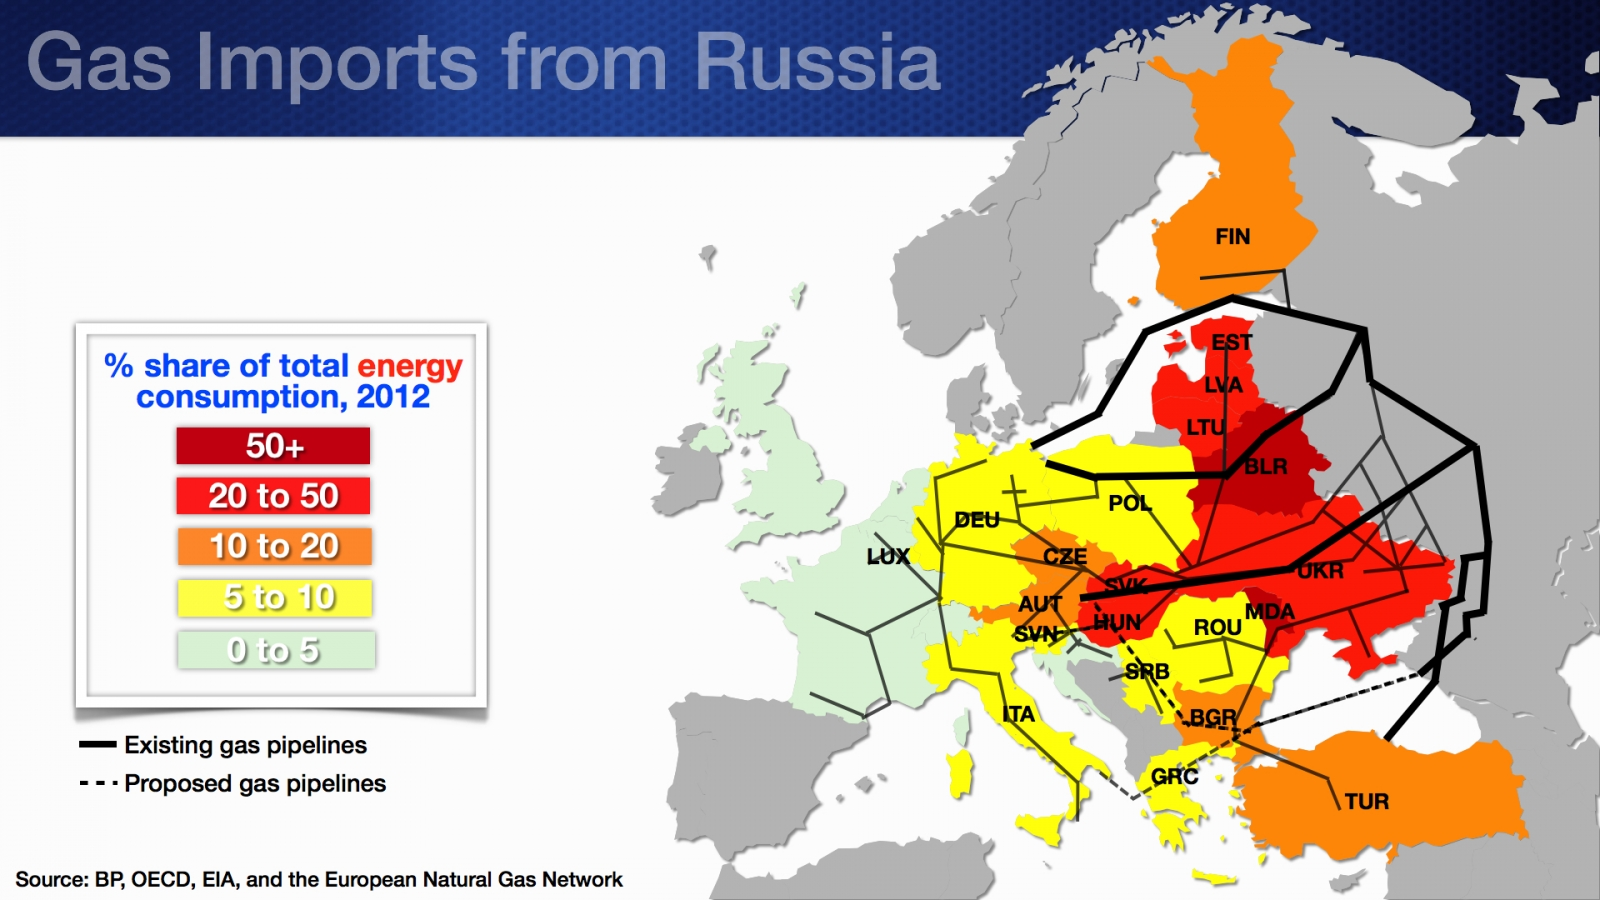 gas imports and total energy consumption